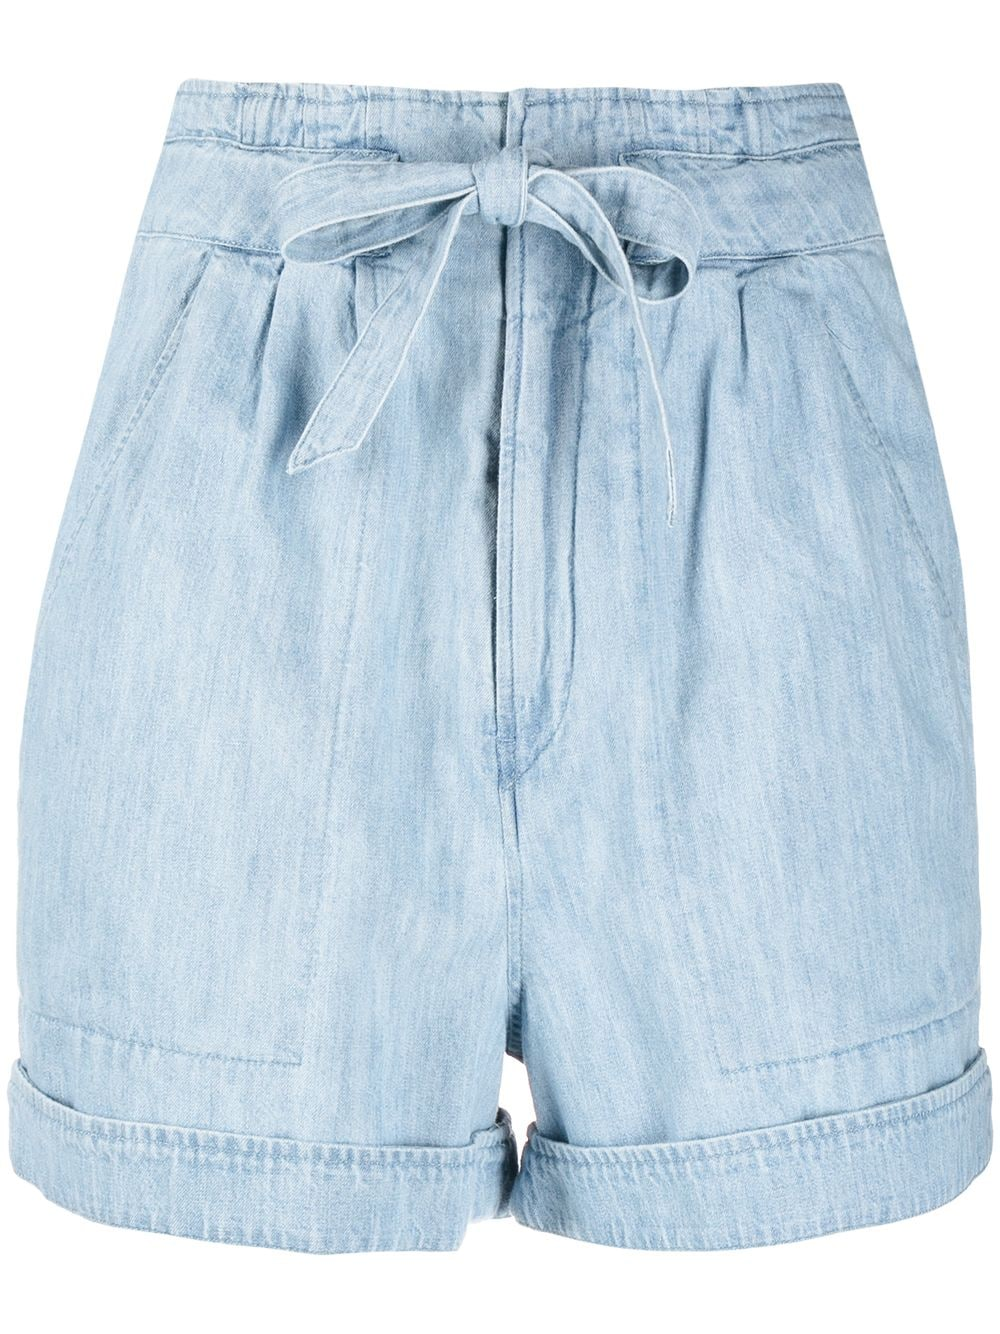 <p class='small-title'>ISABEL MARANT ÉTOILE</p>Denim Shorts